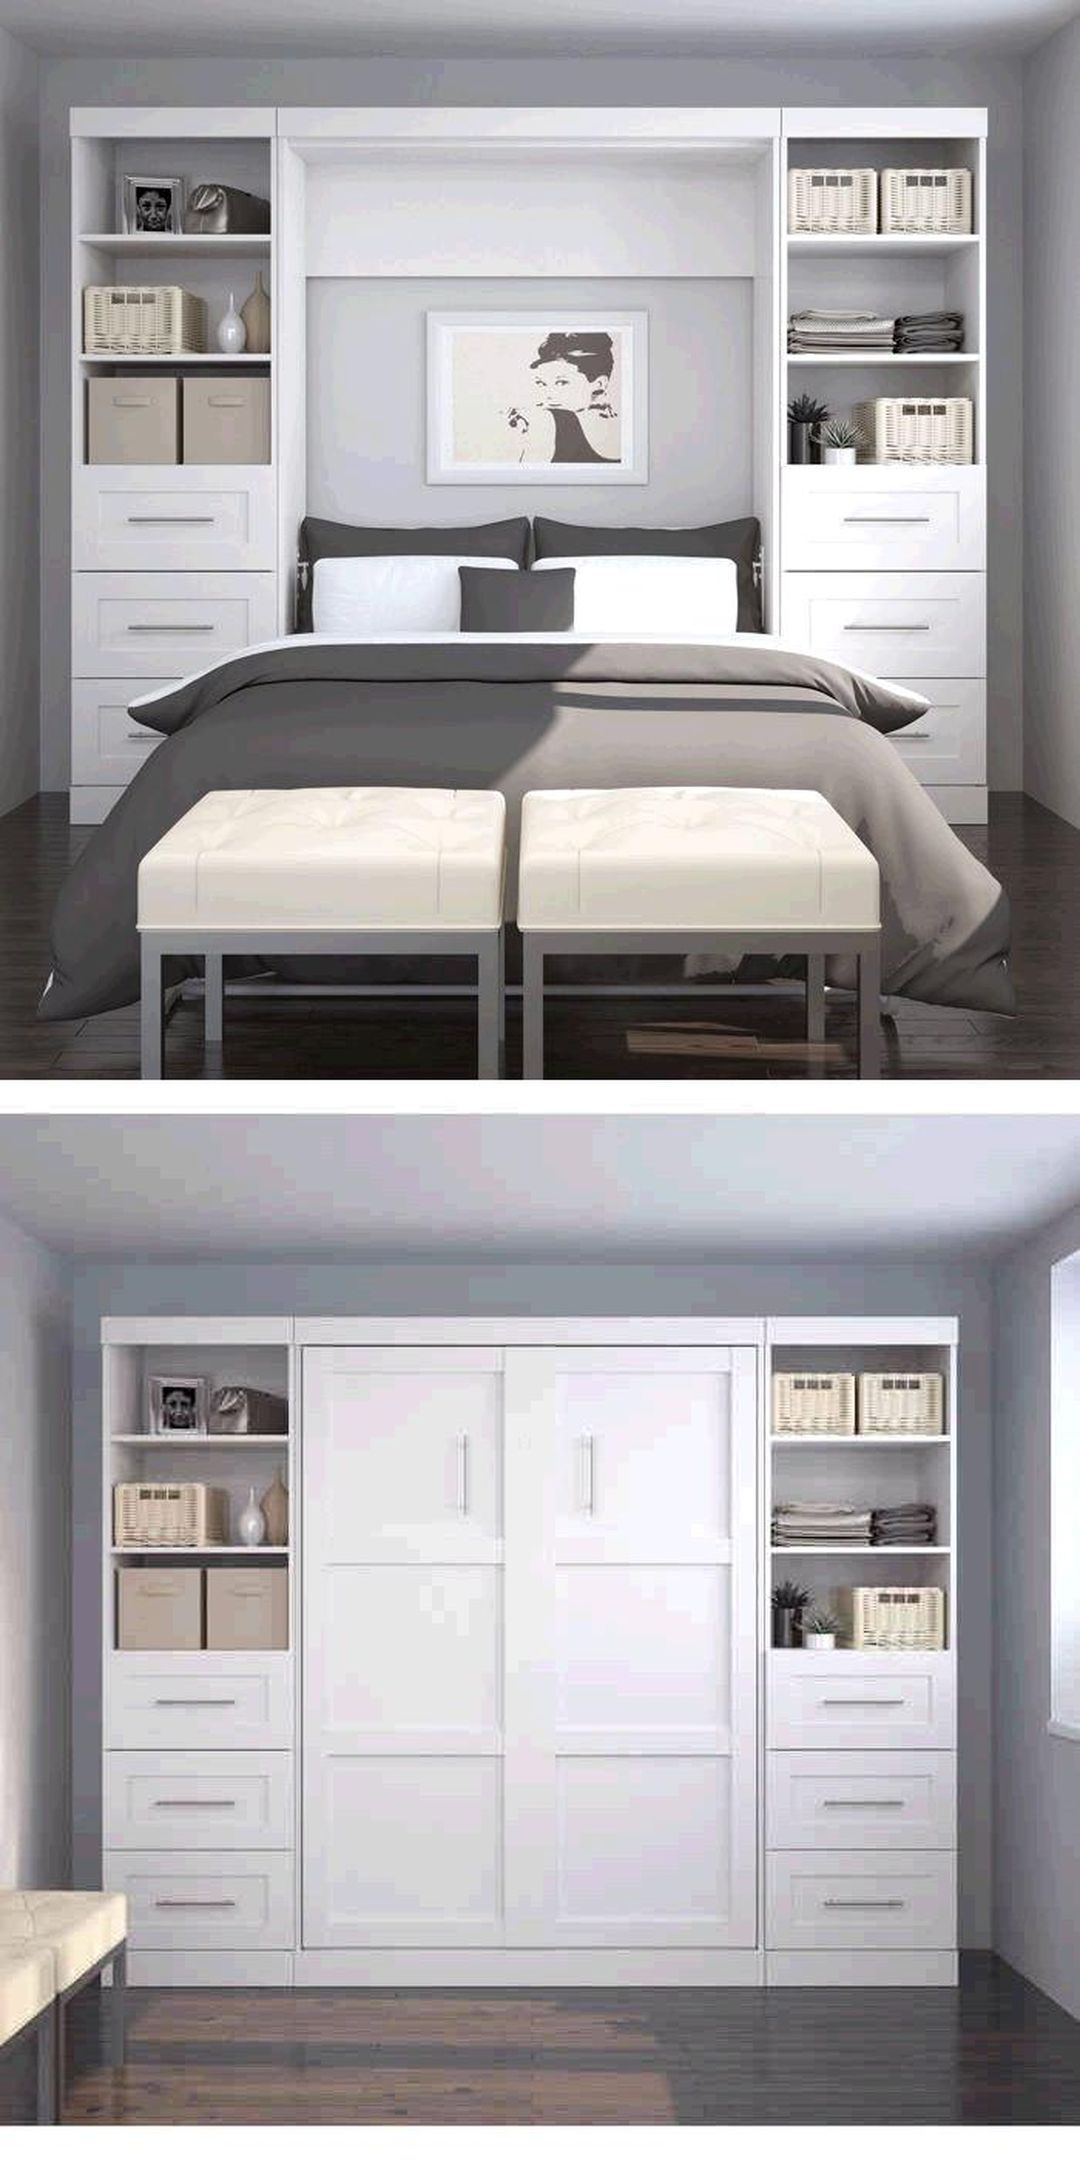 Get Latest DIY Bedroom from onechitecture.com :